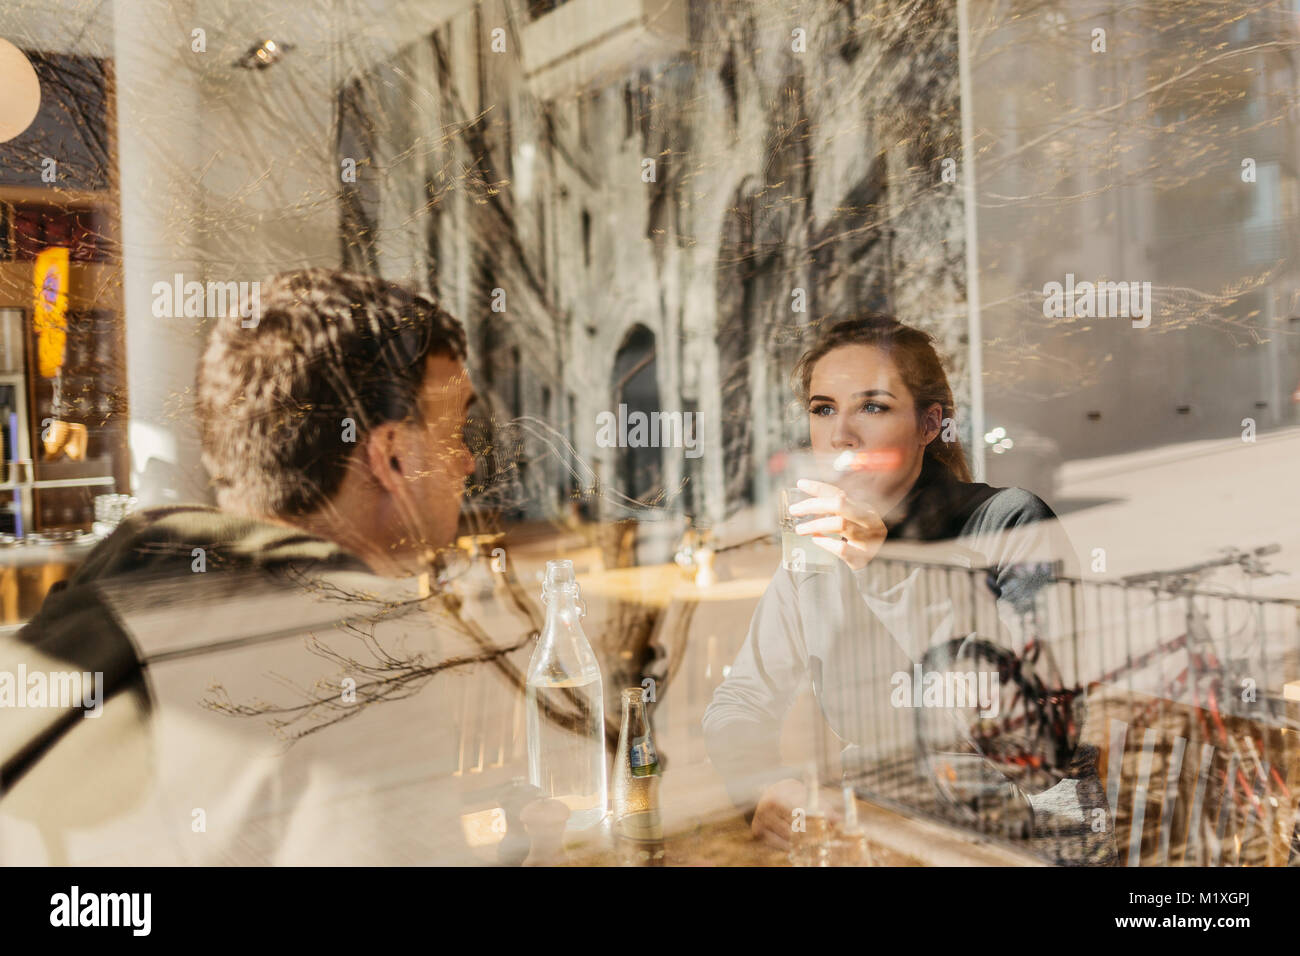 Couple at restaurant in Sweden - Stock Image